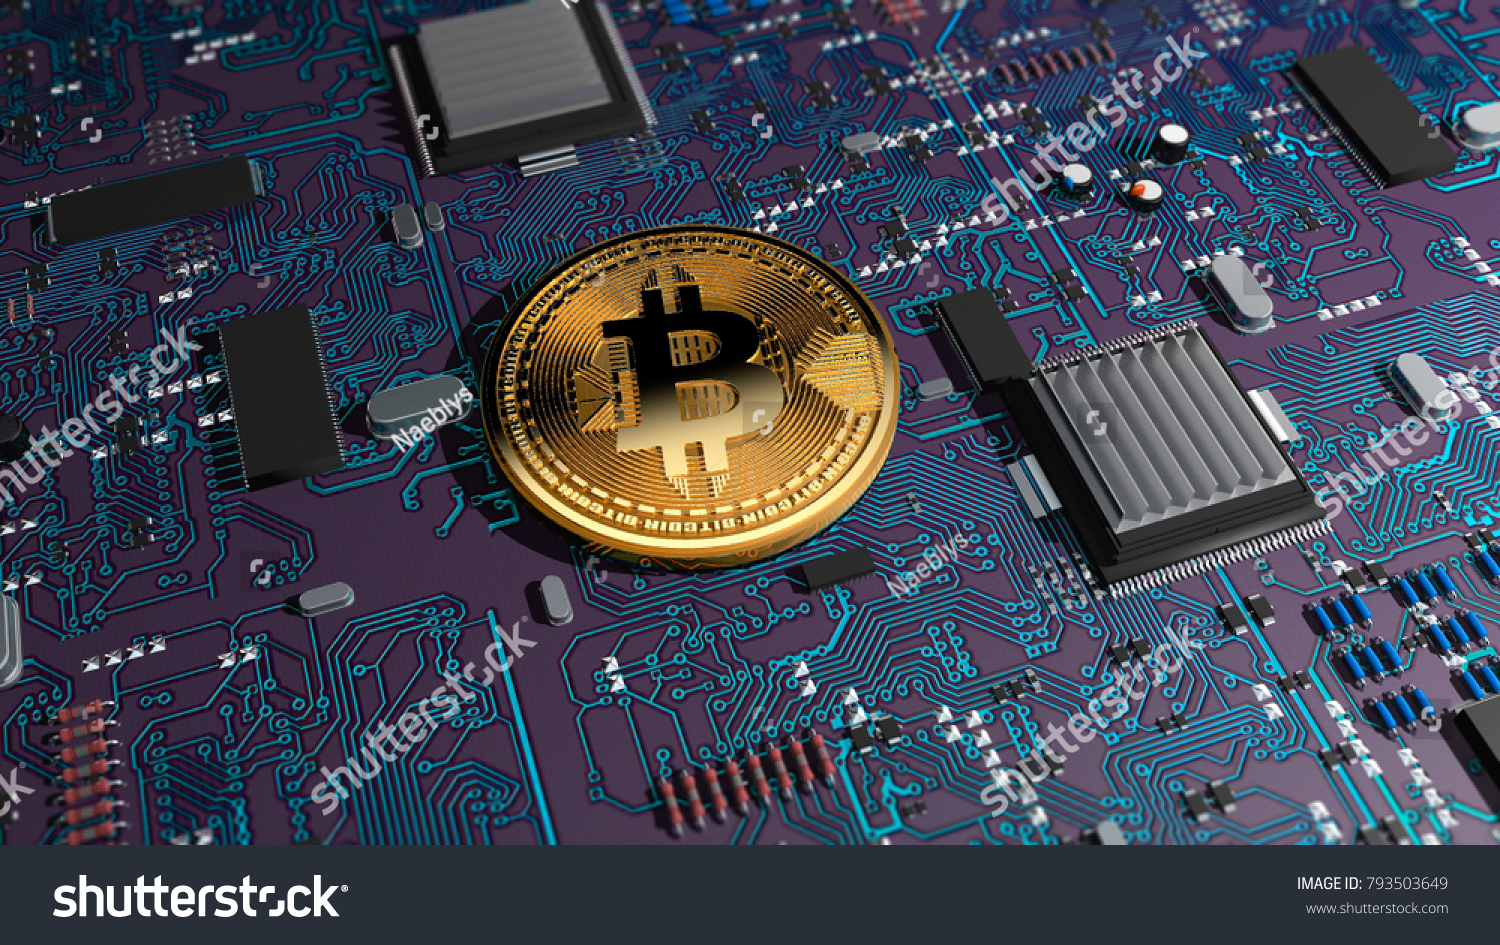 Bitcoin Crypto Currency Electronic Money Virtual Stock Illustration Printed Circuit Board On A Graphics Card Transitions